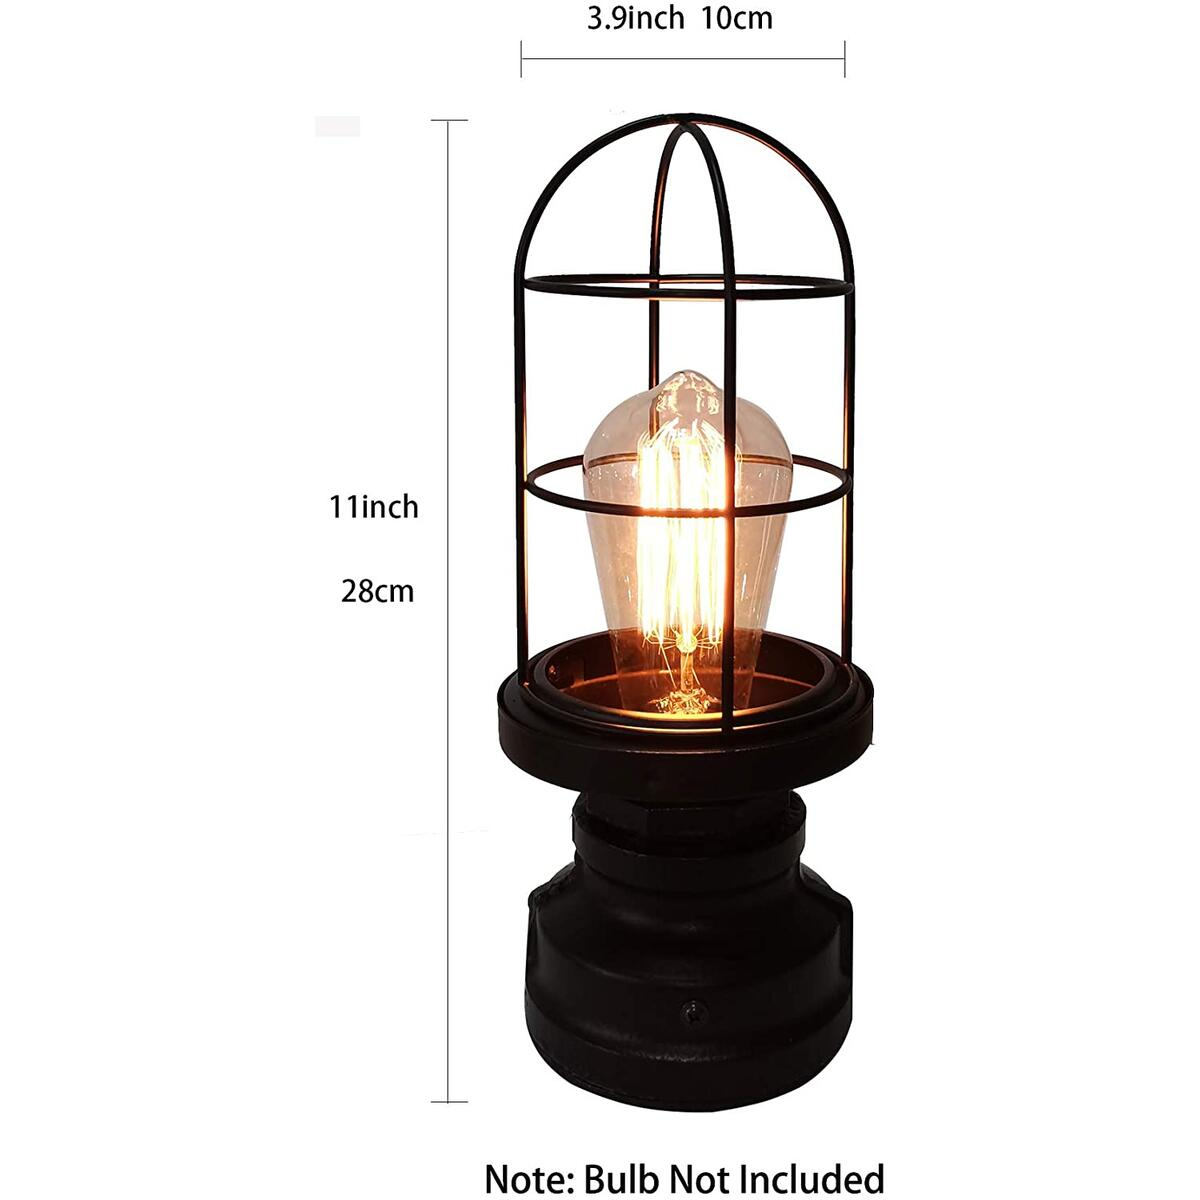 Touch Control Industrial Table Lamp Bedside 3 Way Touch Light Dimmable Vintage Desk Lamps with Metal Wire Cage, Antique Water Pipe Steampunk Nightstand Lamp for Bedrooms